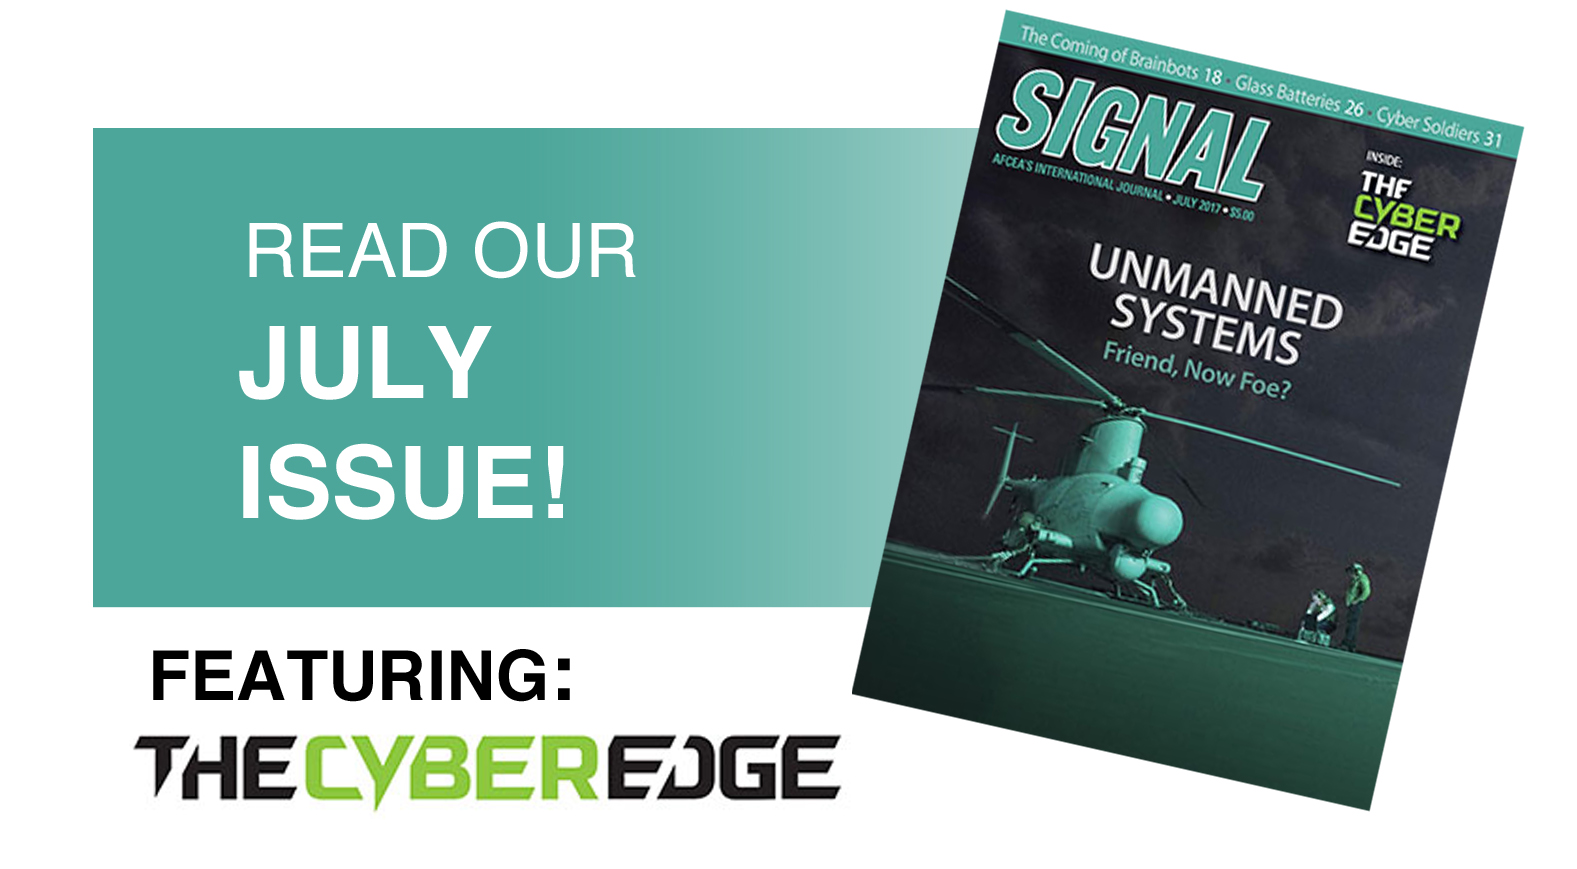 SIGNAL July Issue